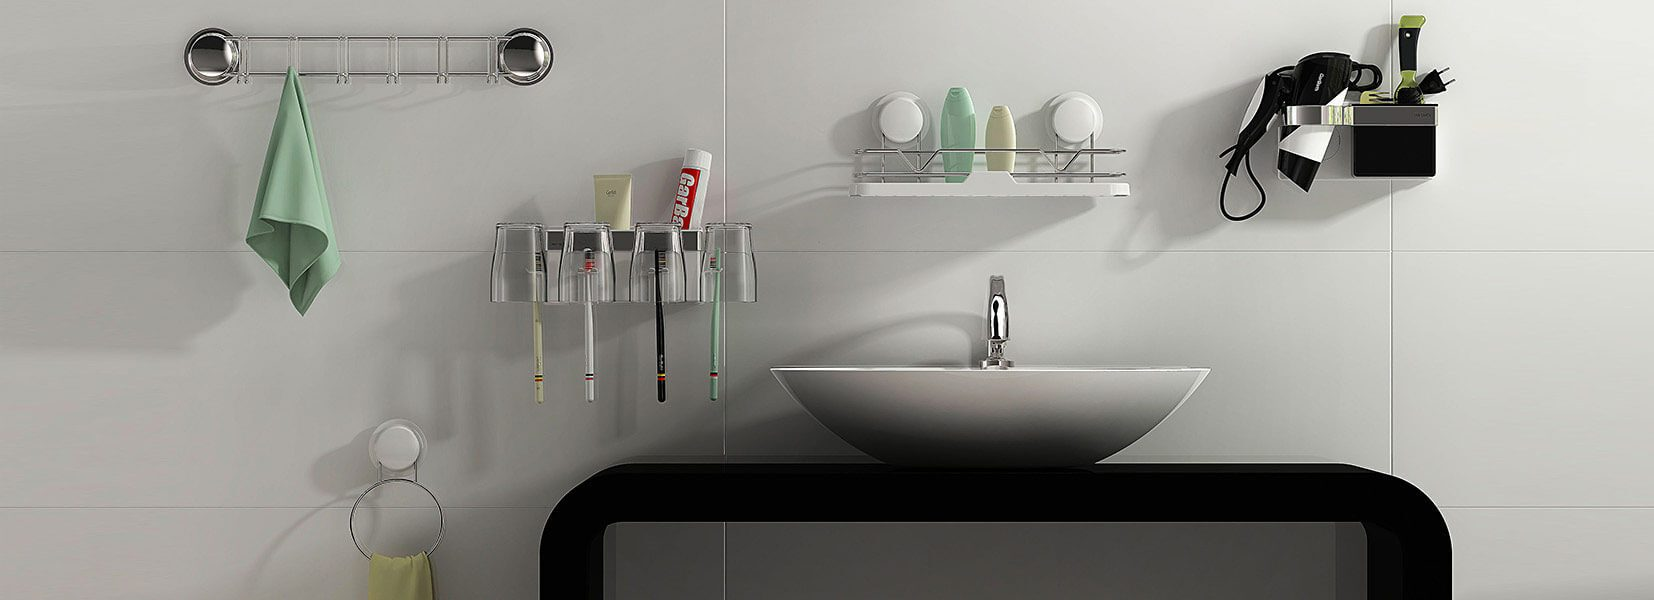 suction bathroom accessories banner